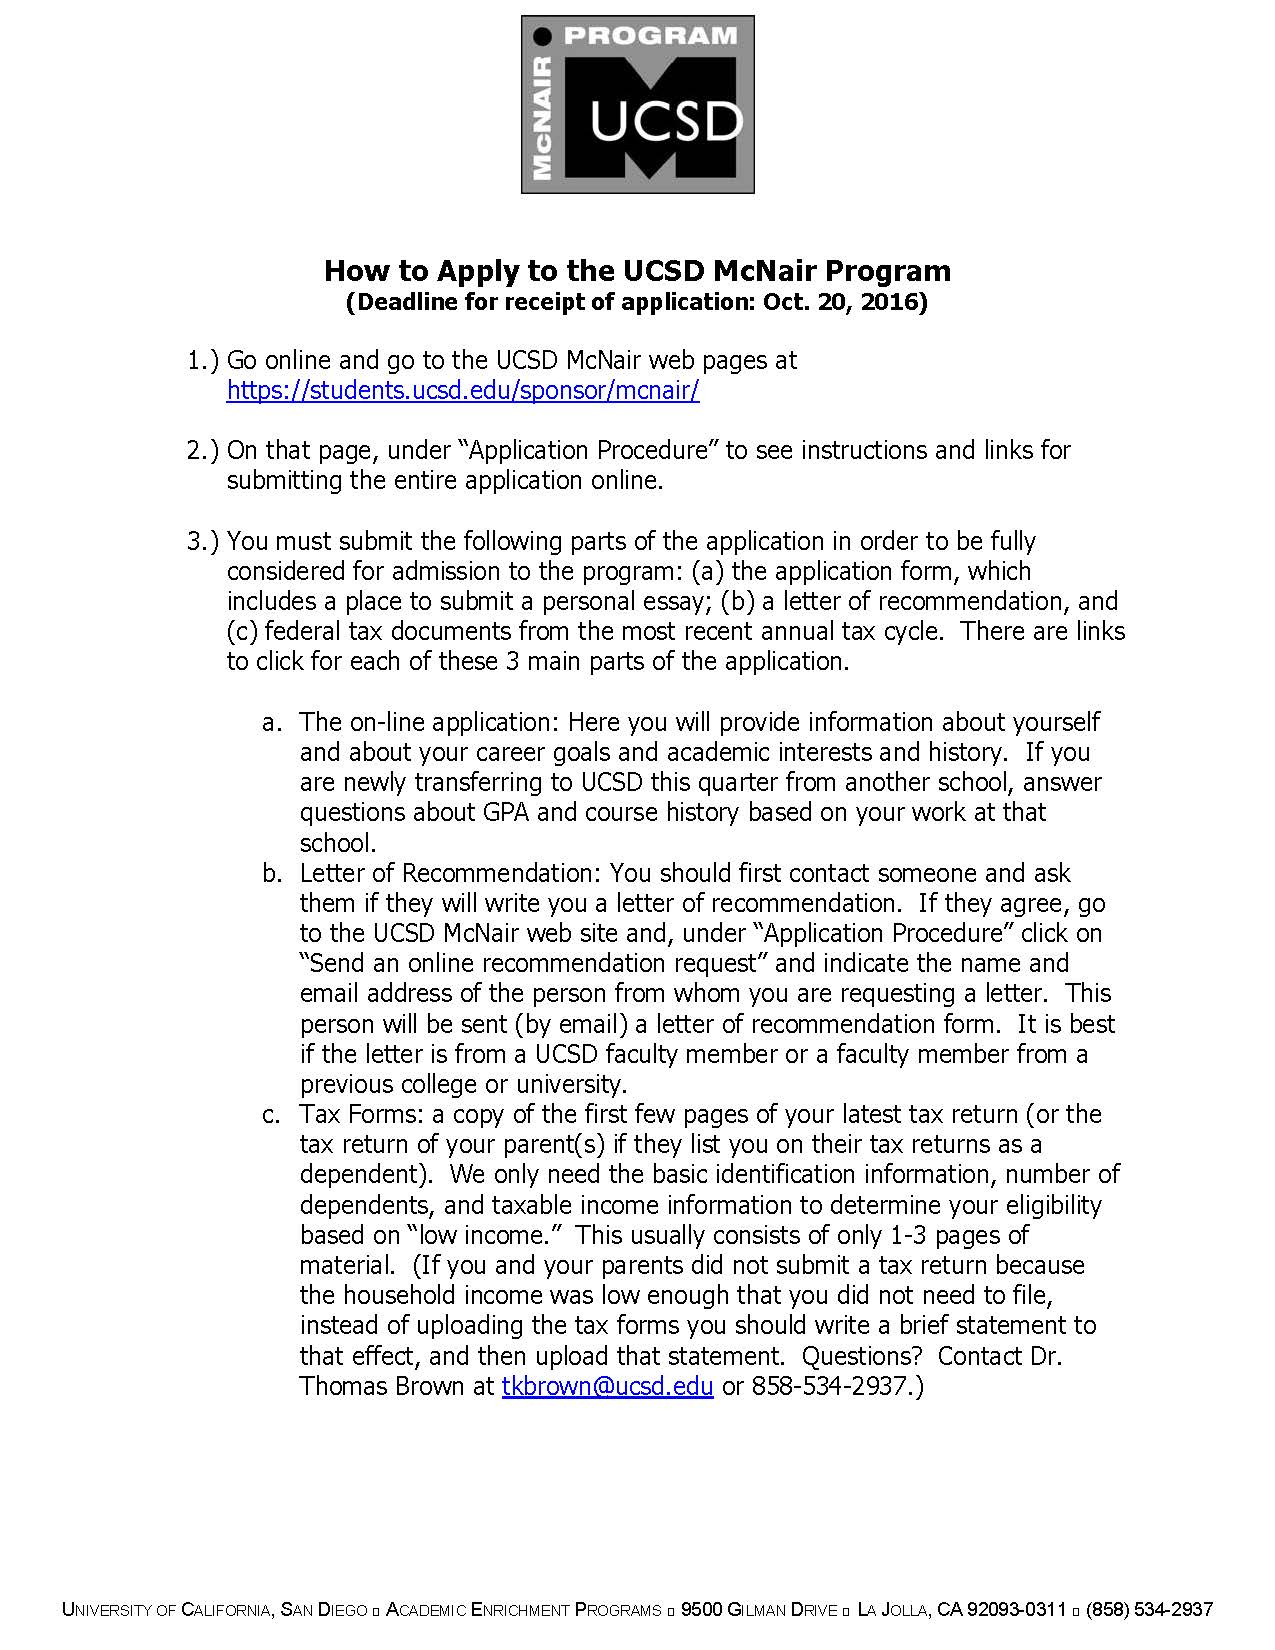 how to apply to the ucsd mcnair program_page_1 – UC San Diego